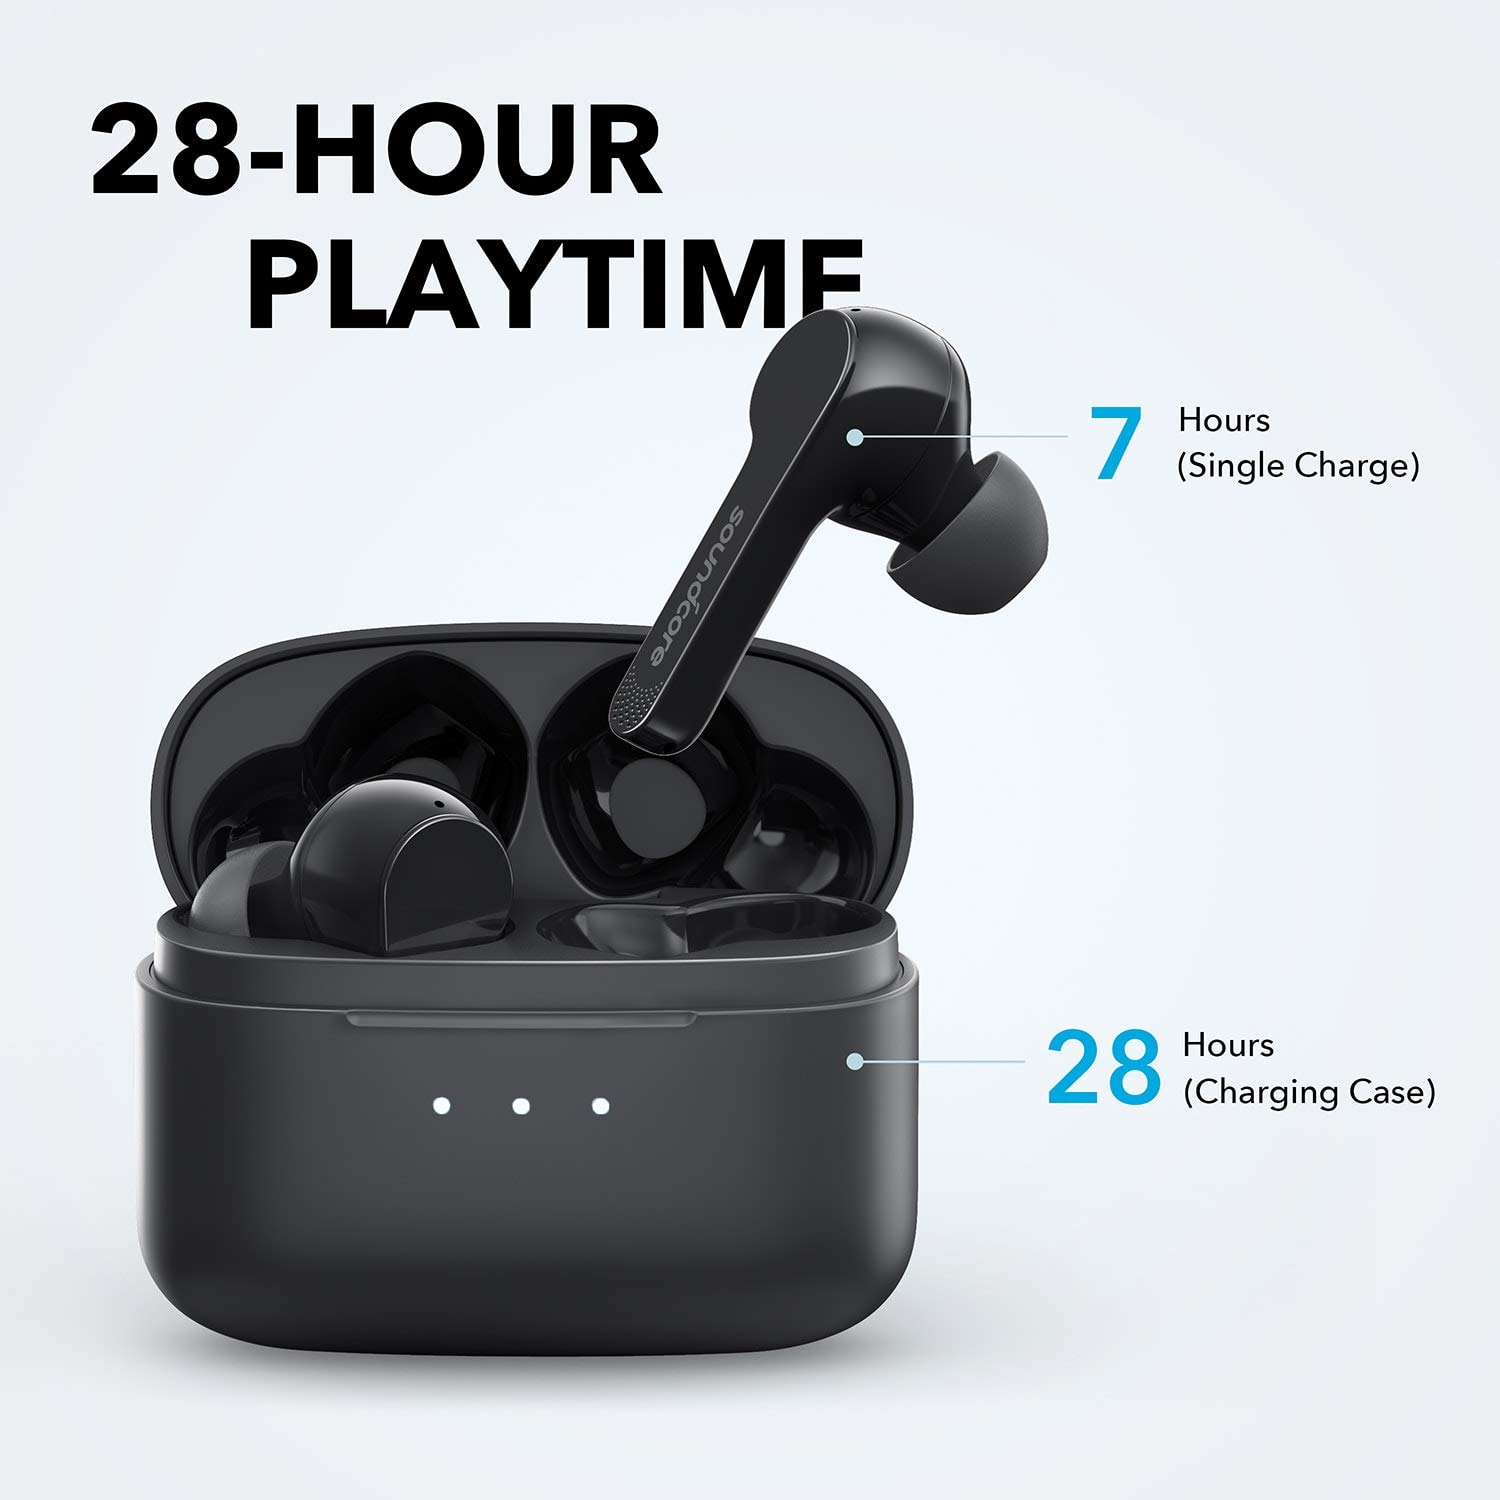 Soundcore Anker Liberty Air TrueWireless Earphones with Charging Case Bluetooth 5 20 Hour Battery